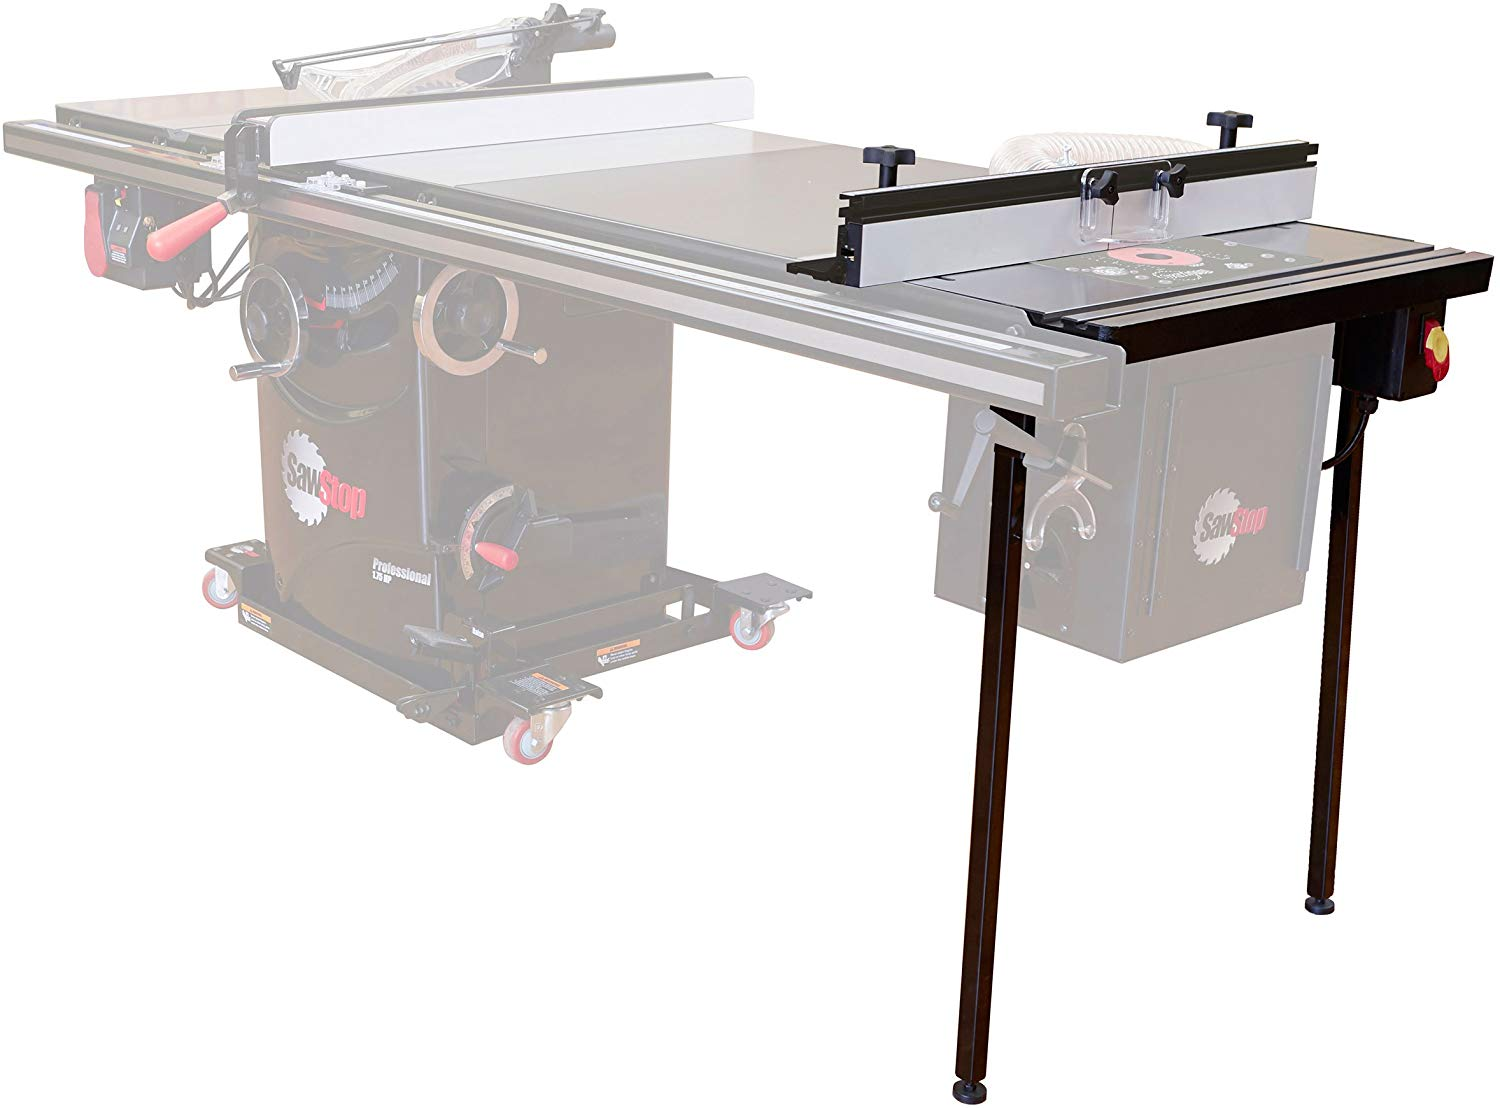 SawStop Inline Router Table Review